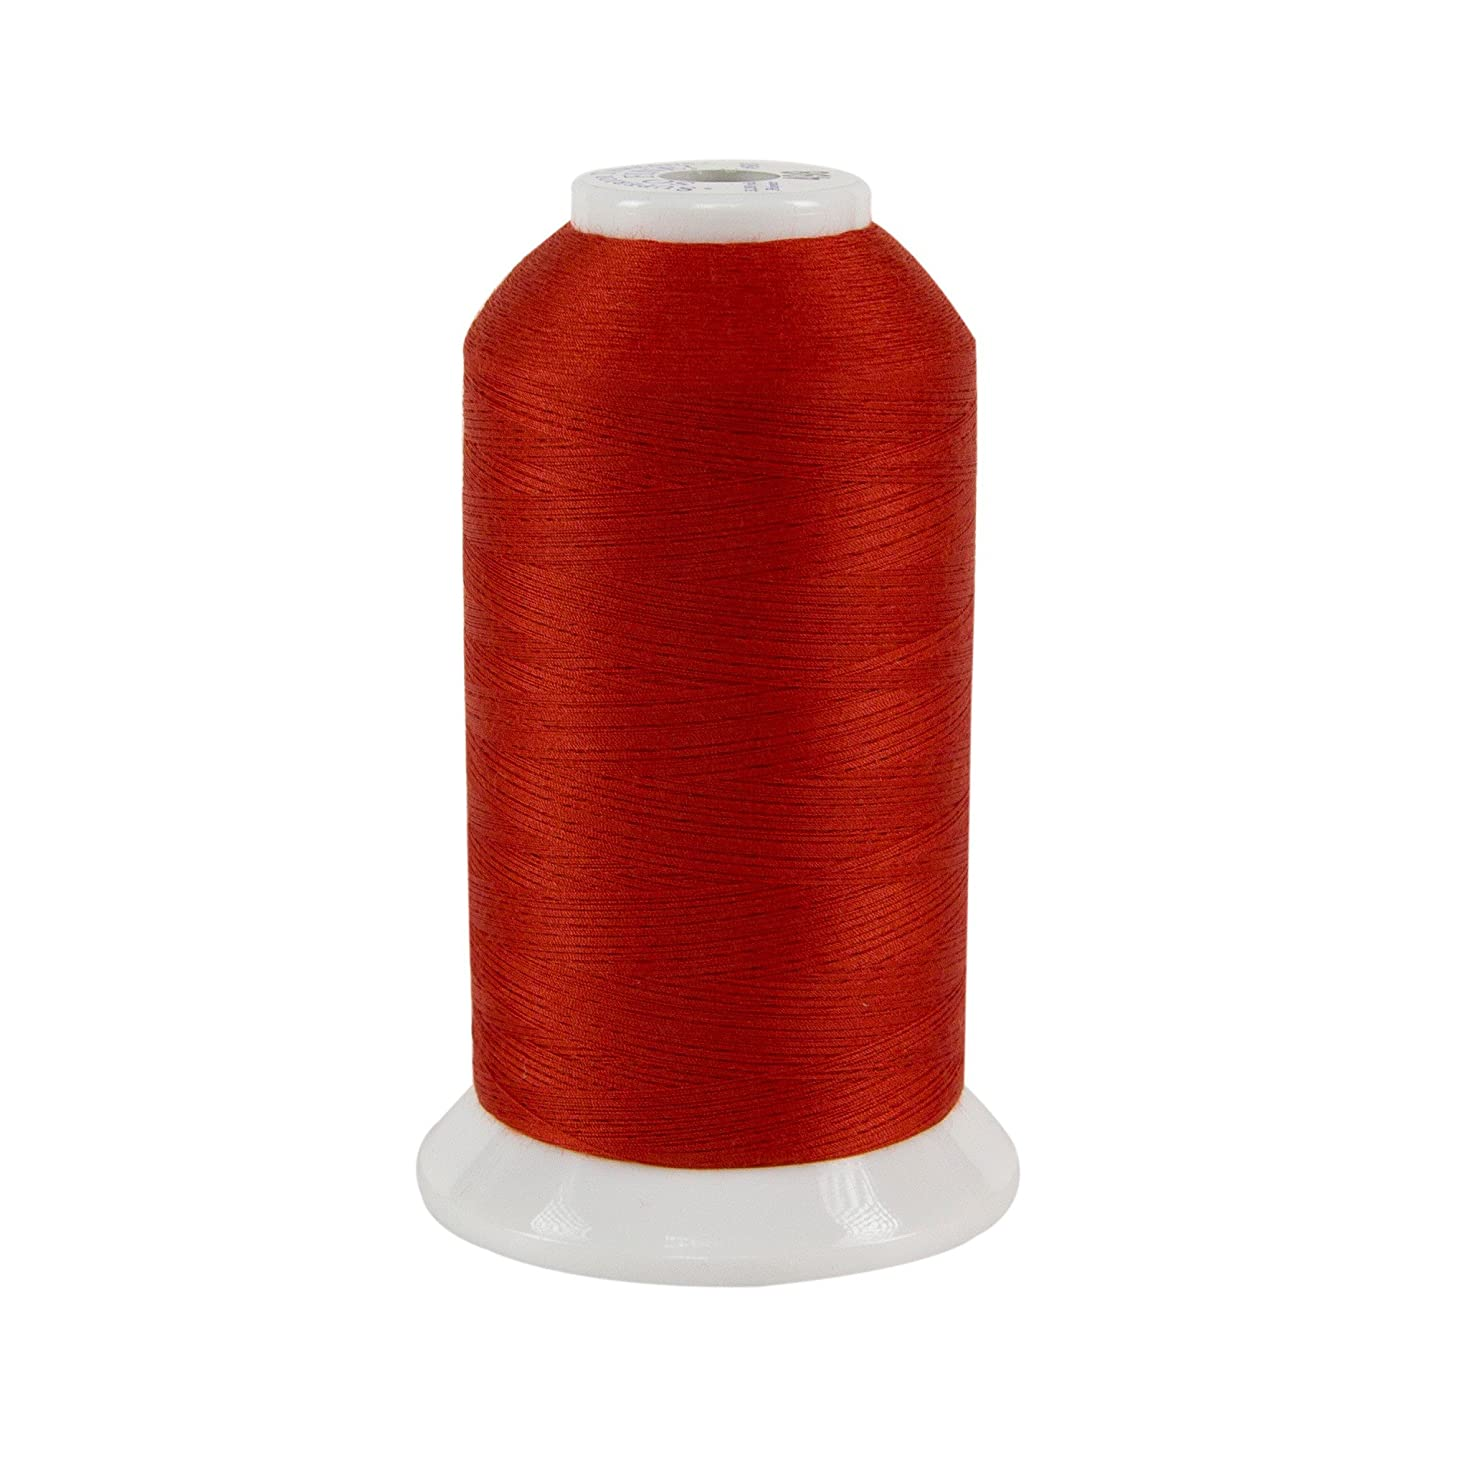 Superior Threads 11602-498 So Fine Indian Paintbrush 3-Ply 50W Polyester Thread, 3280 yd